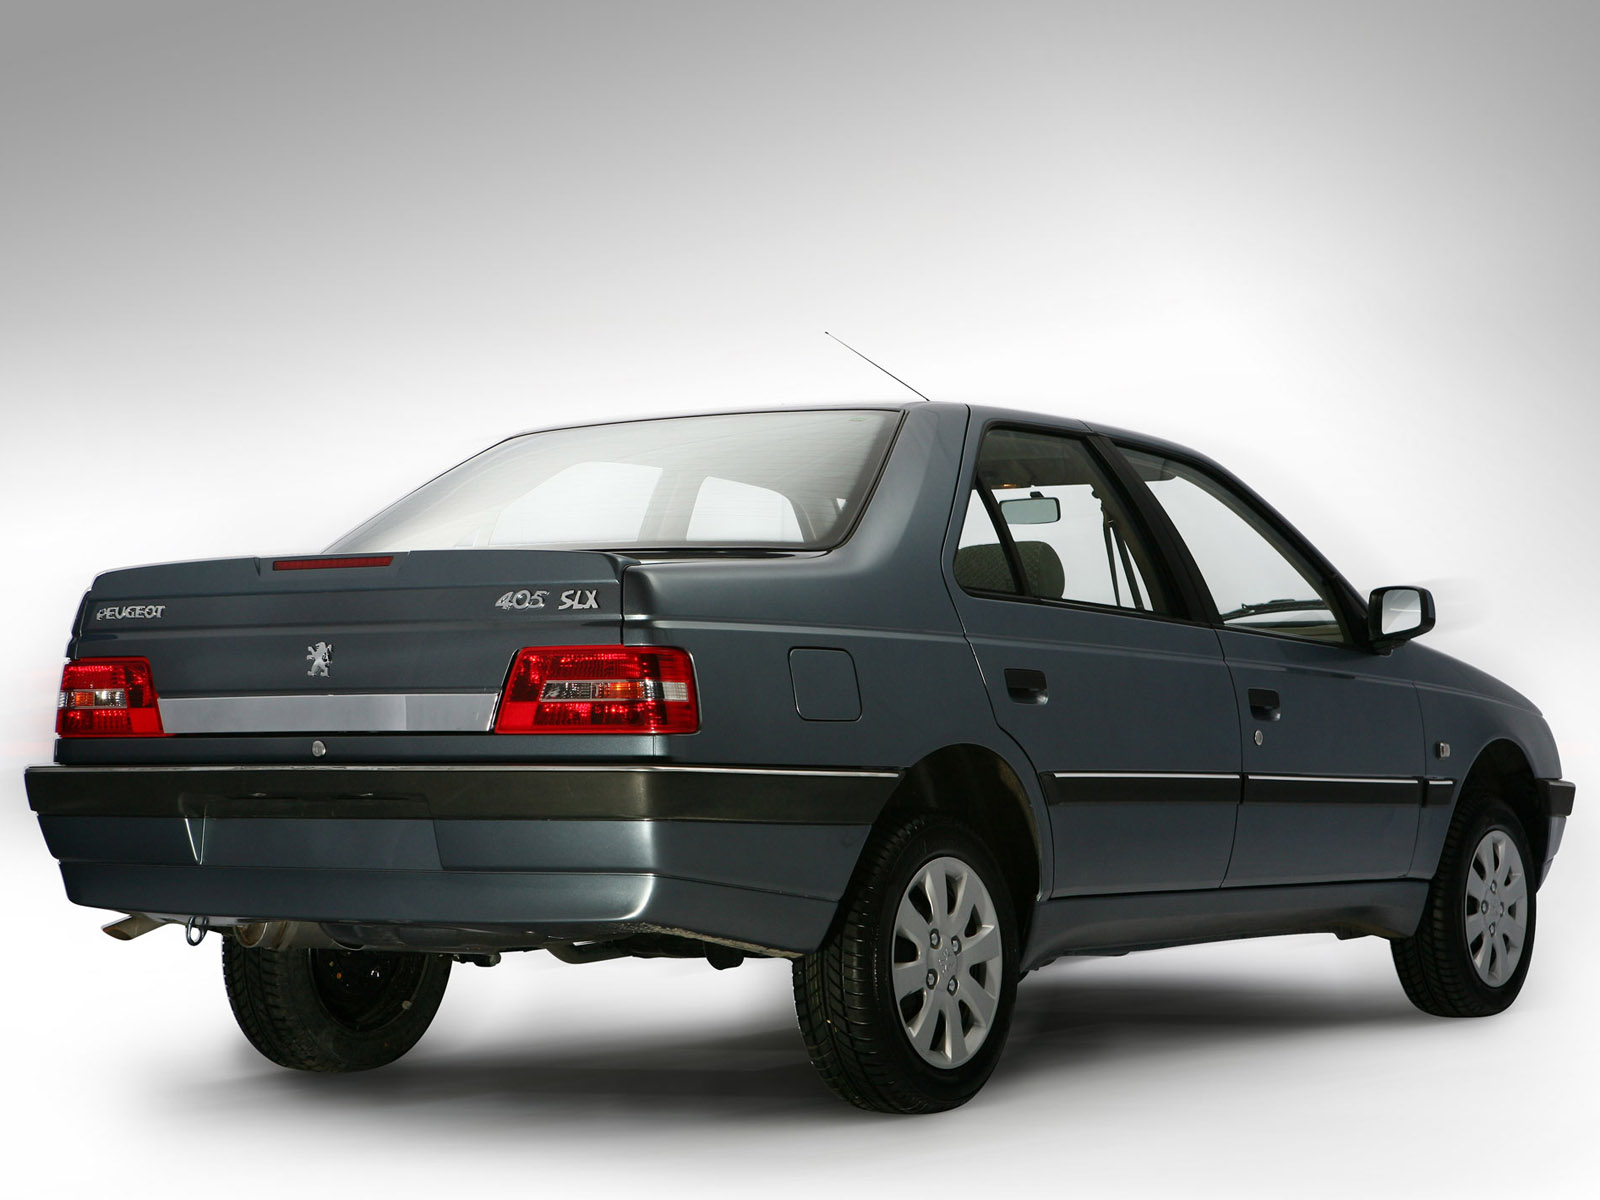 40 Places To Buy Affordable Ethical Peugeot 405 photo gallery